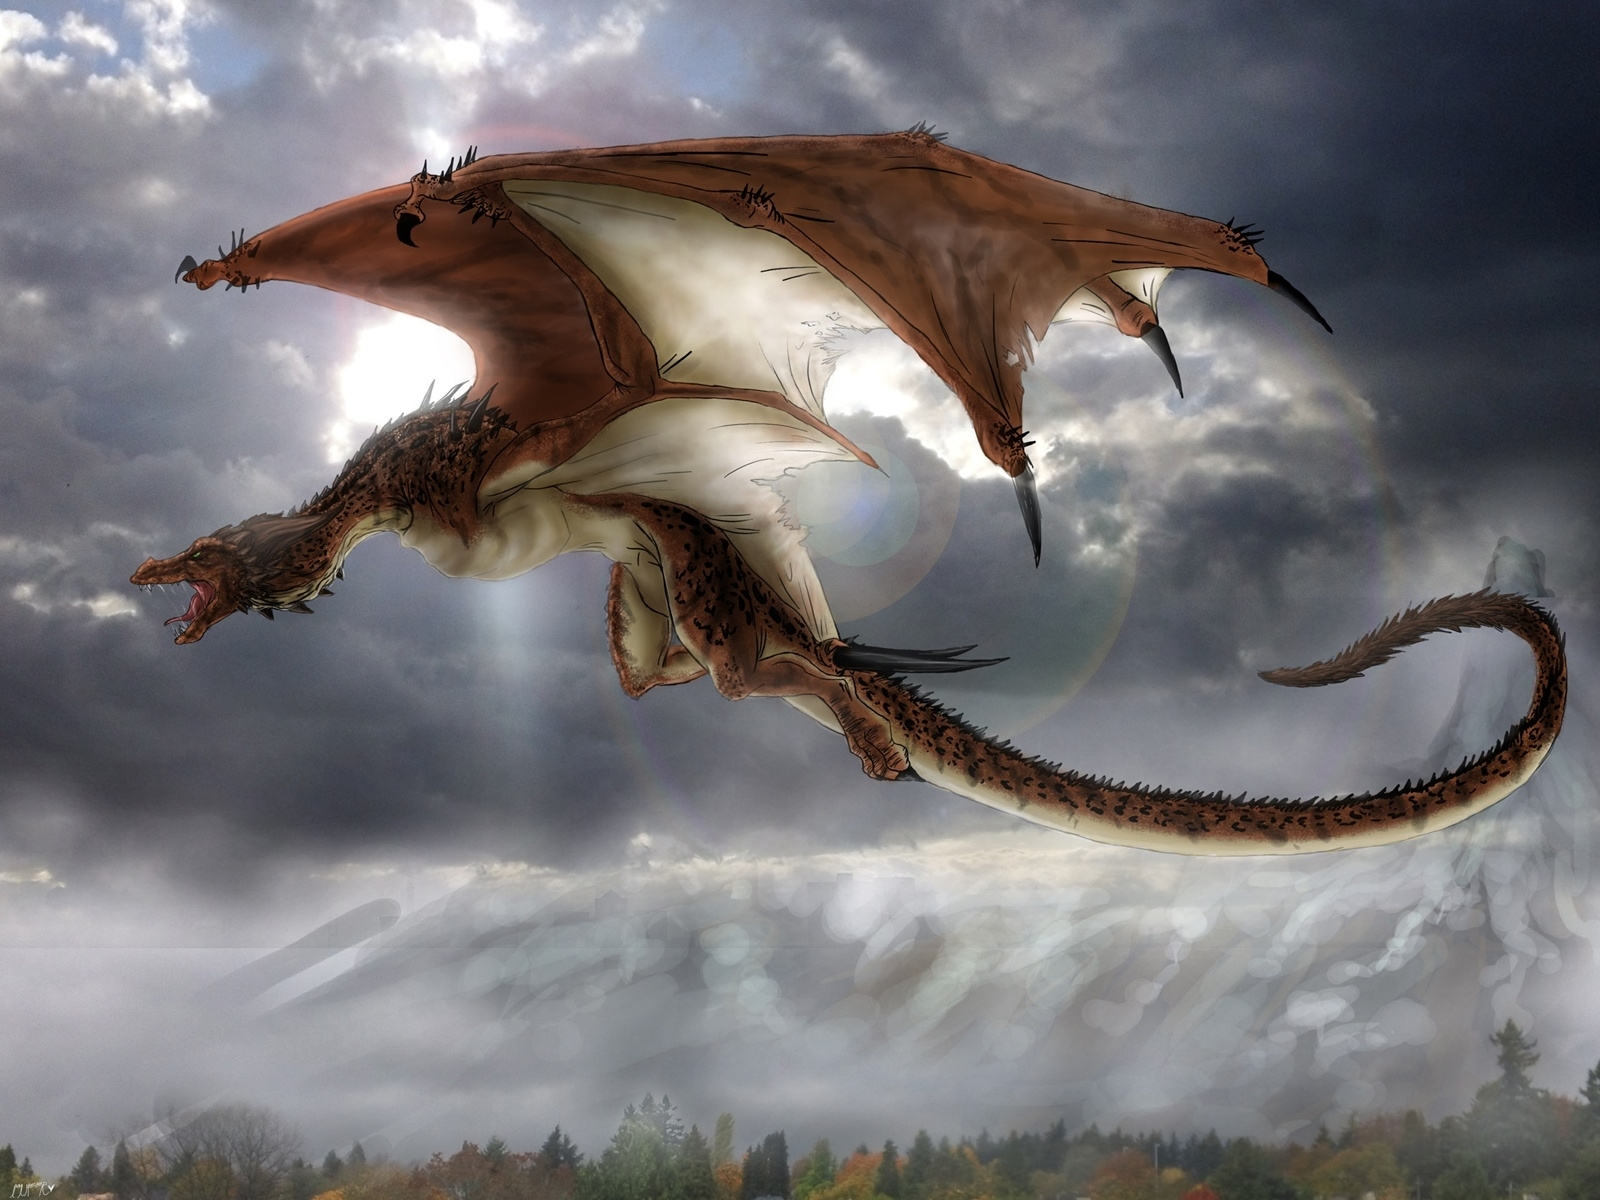 mythical creatures images dragon hd wallpaper and background photos